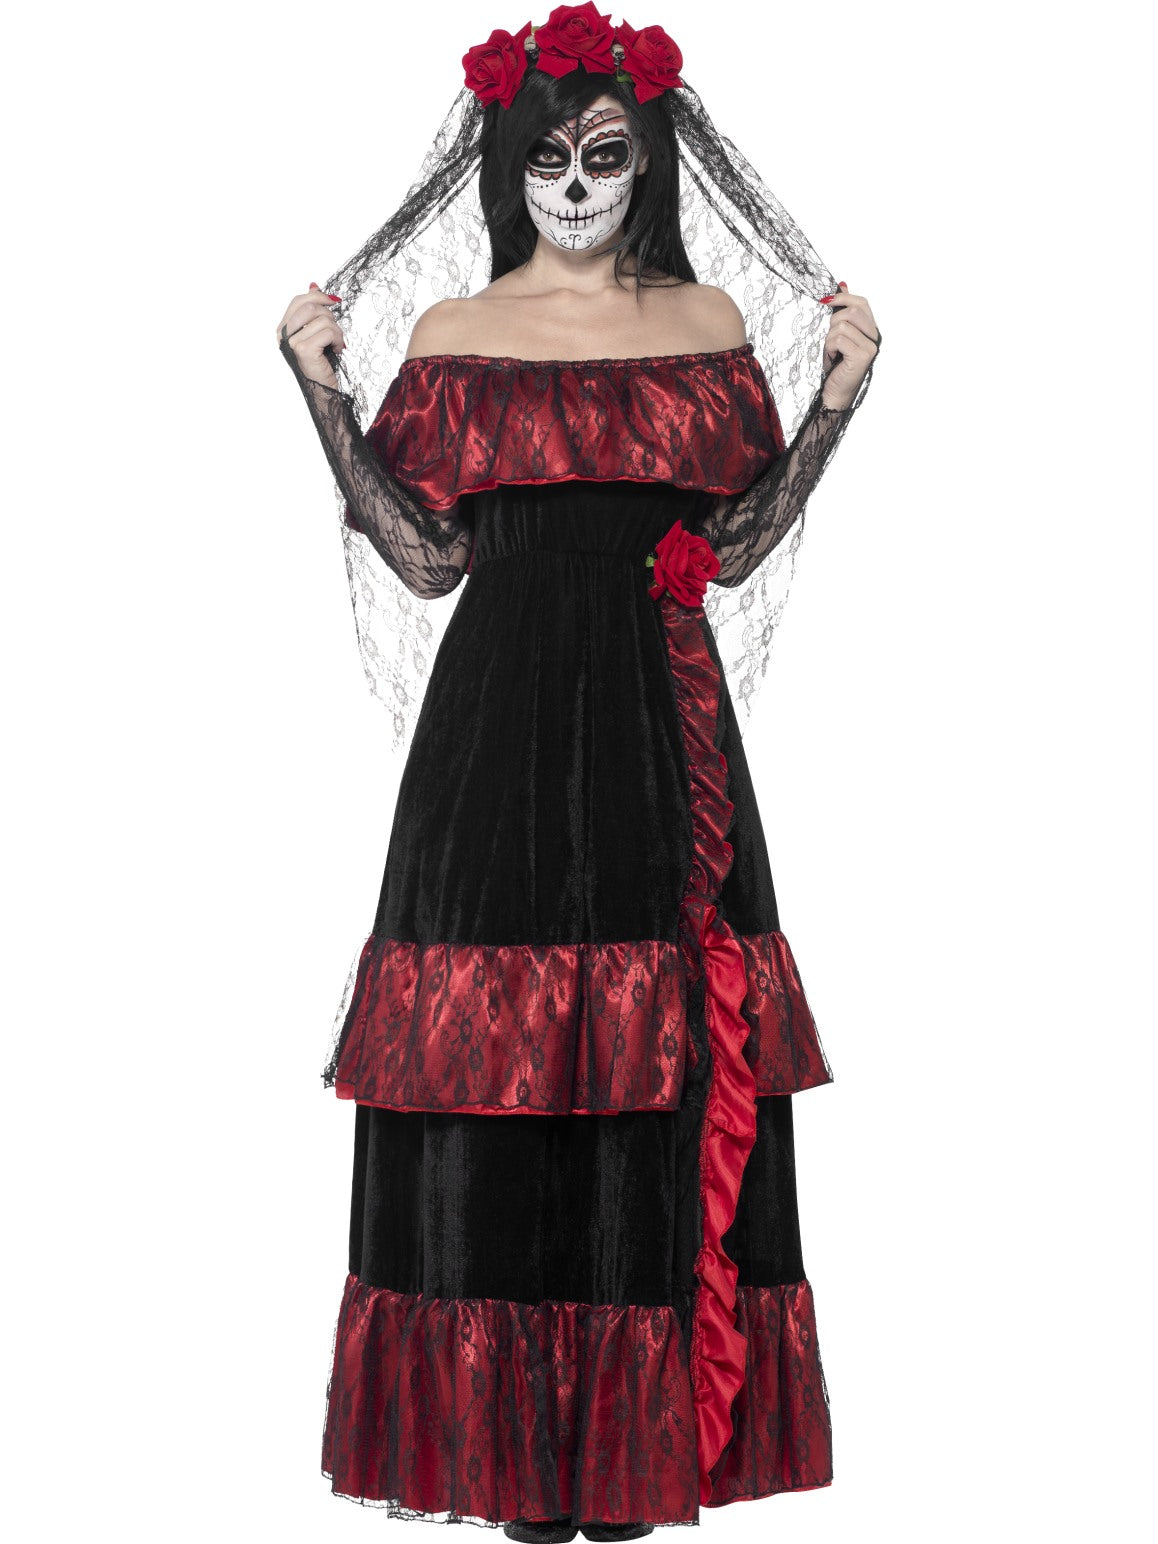 Womens Costume - Day of the Dead Bride